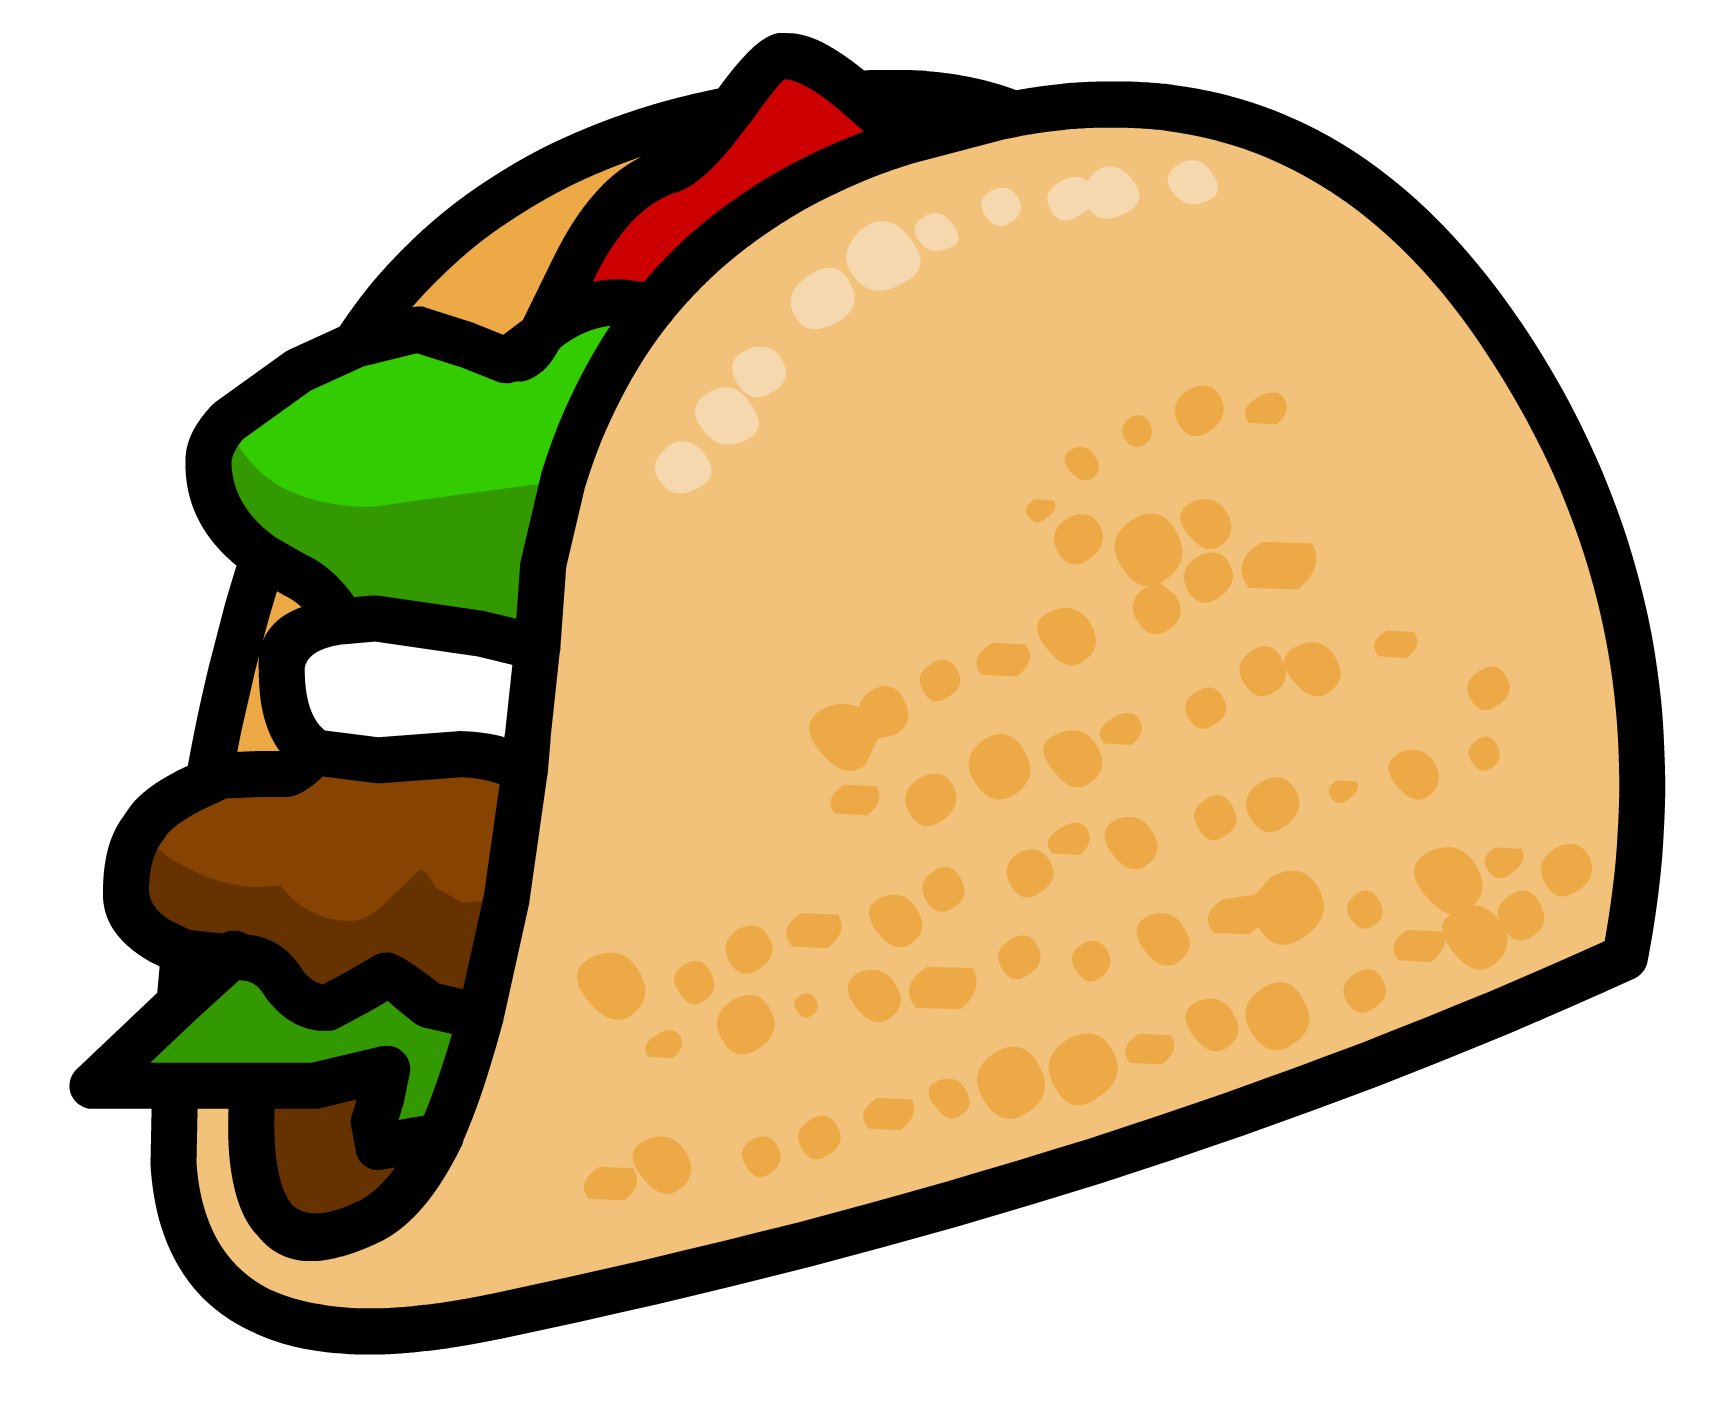 The Real Taco Follow Me And I Will Lead You On A Journey